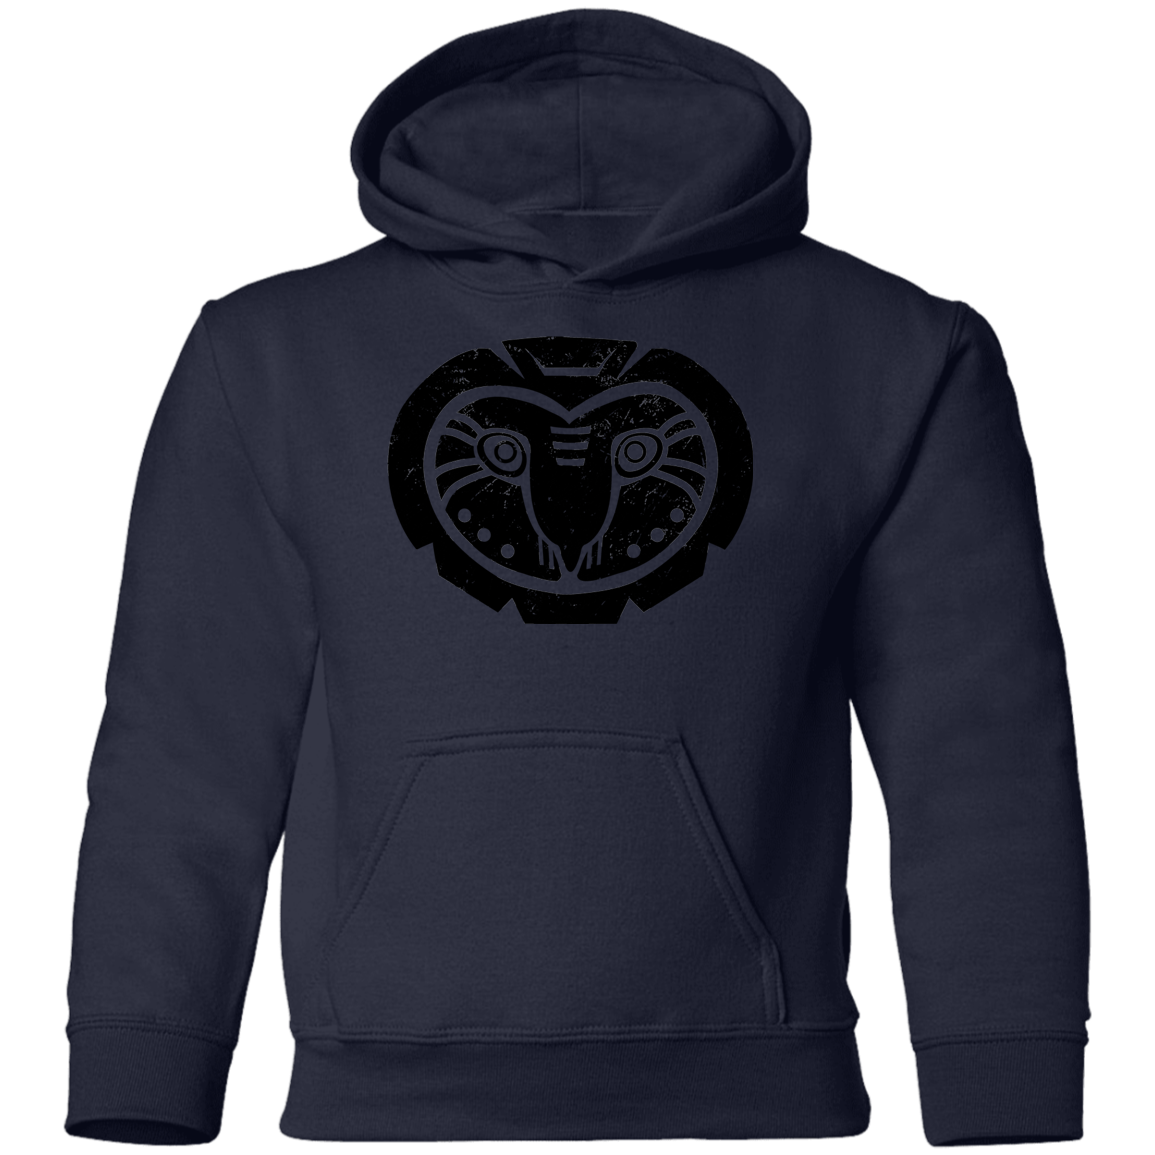 Black Distressed Emblem Hoodies for Kids (Barn Owl/Grim)